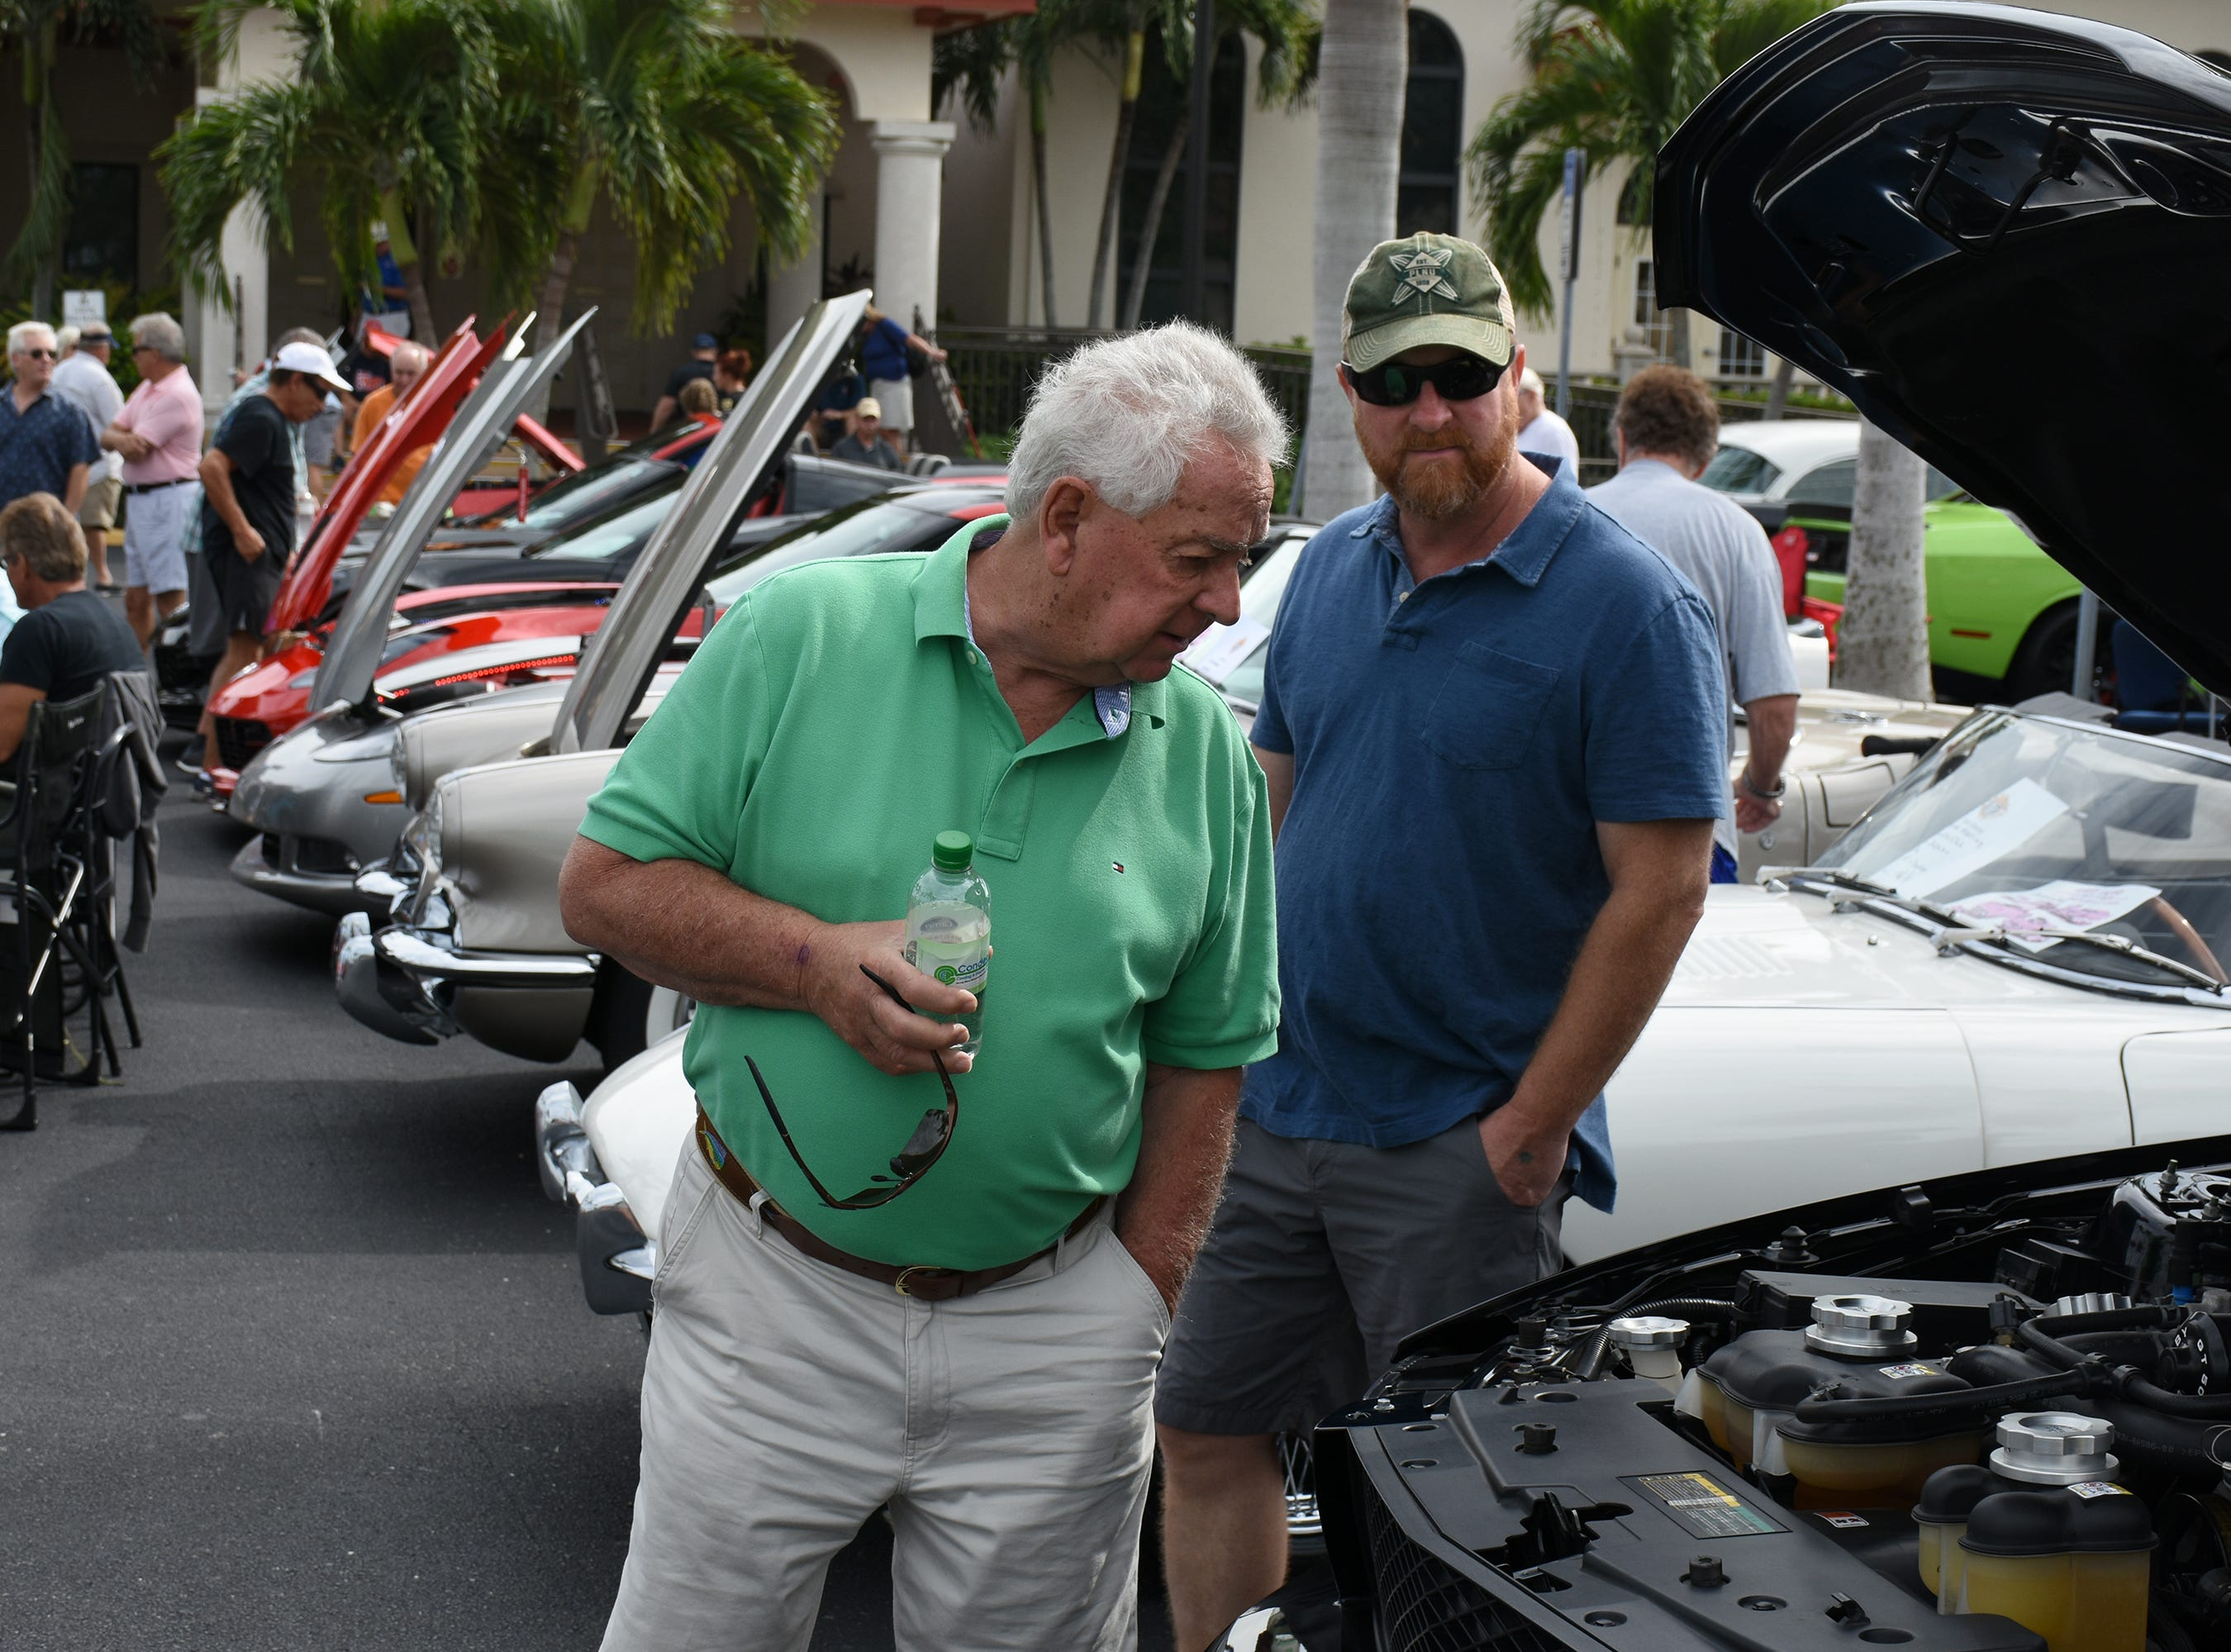 Bill Roy and Don Roy look under the hood. The Marco Island Knights of Columbus held their inaugural car show Saturday in the parking lot at San Marco Catholic Church.